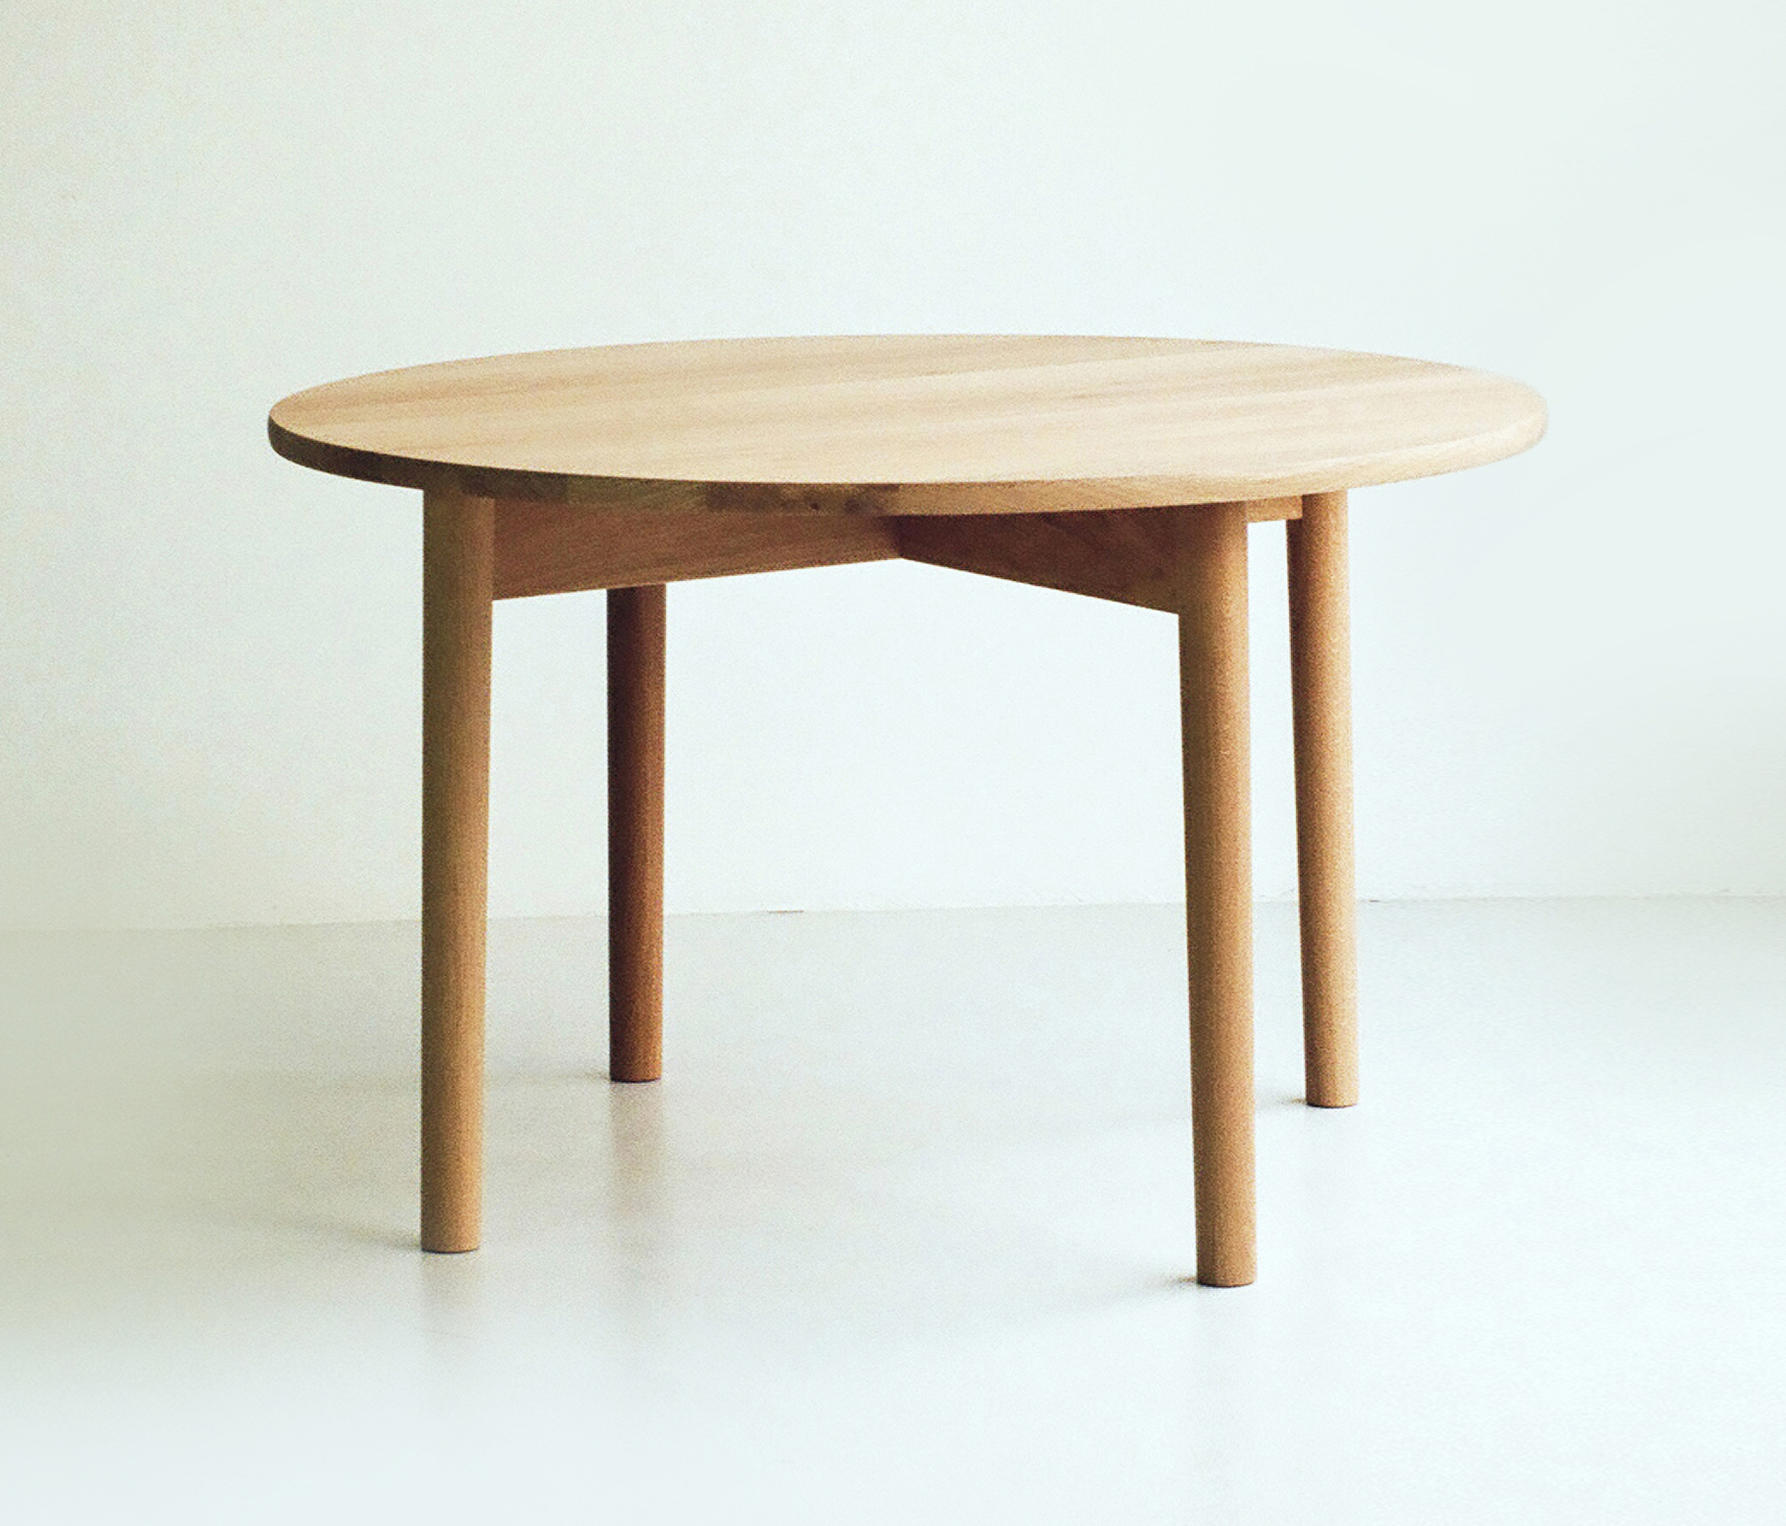 Oak Dining Table round   Architonic